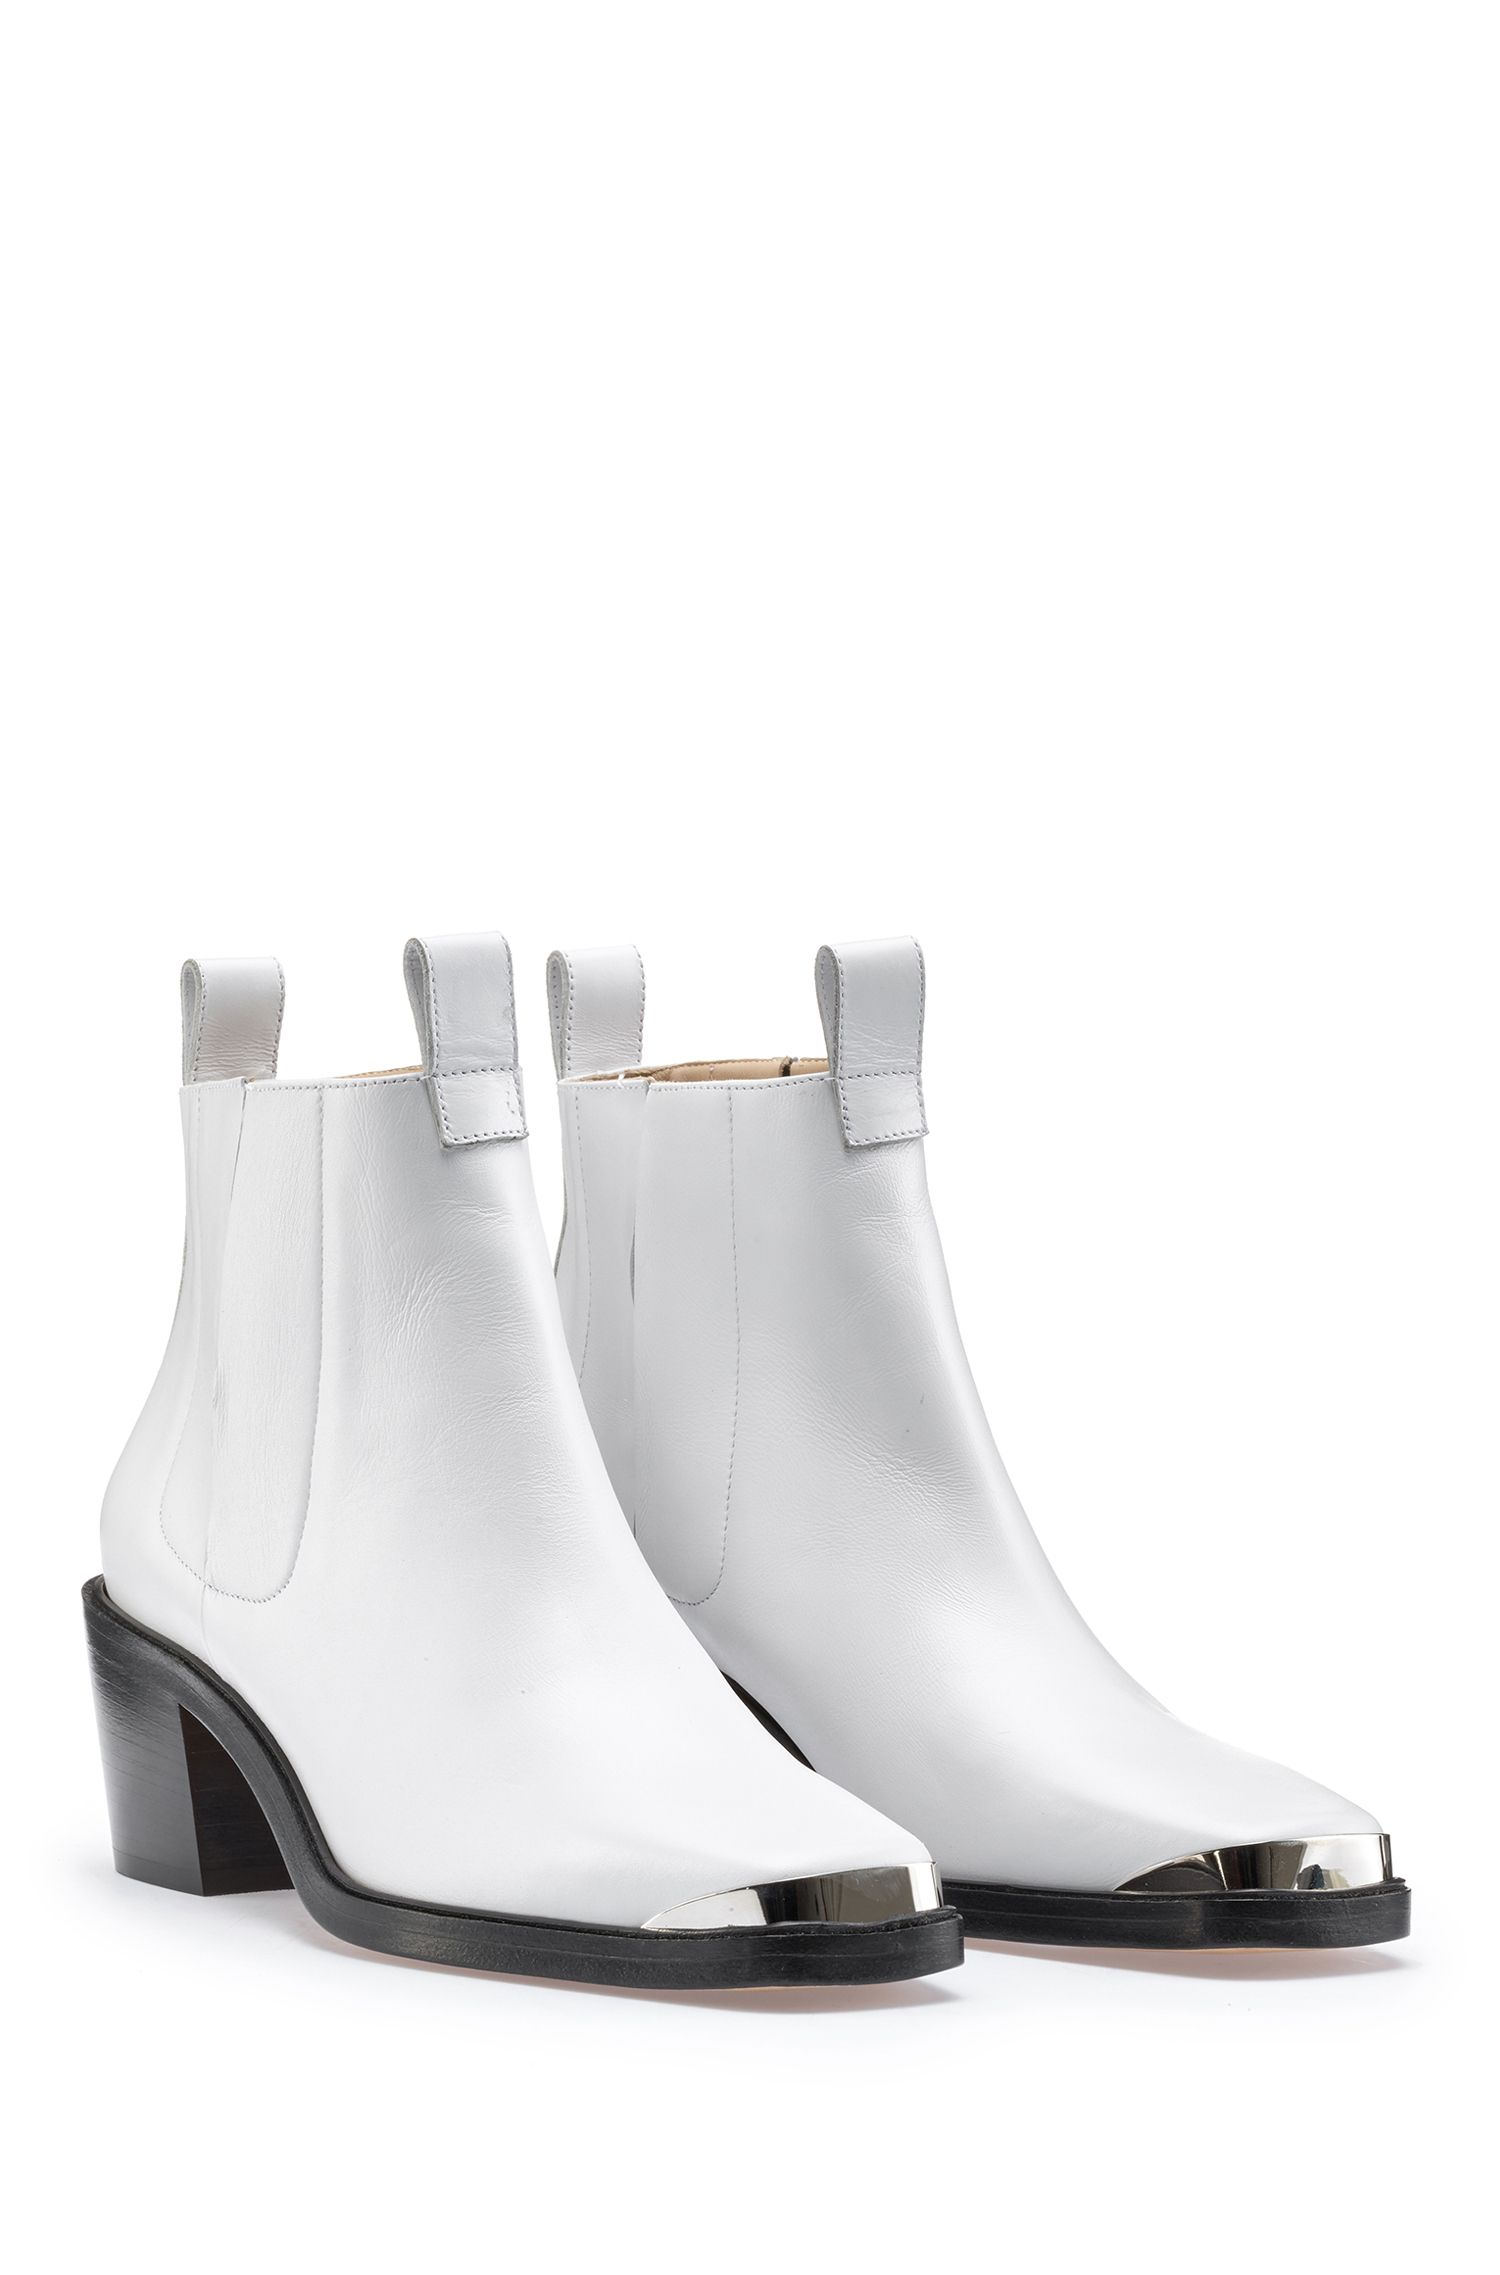 Italian calf-leather Chelsea boots with polished silver trim, White